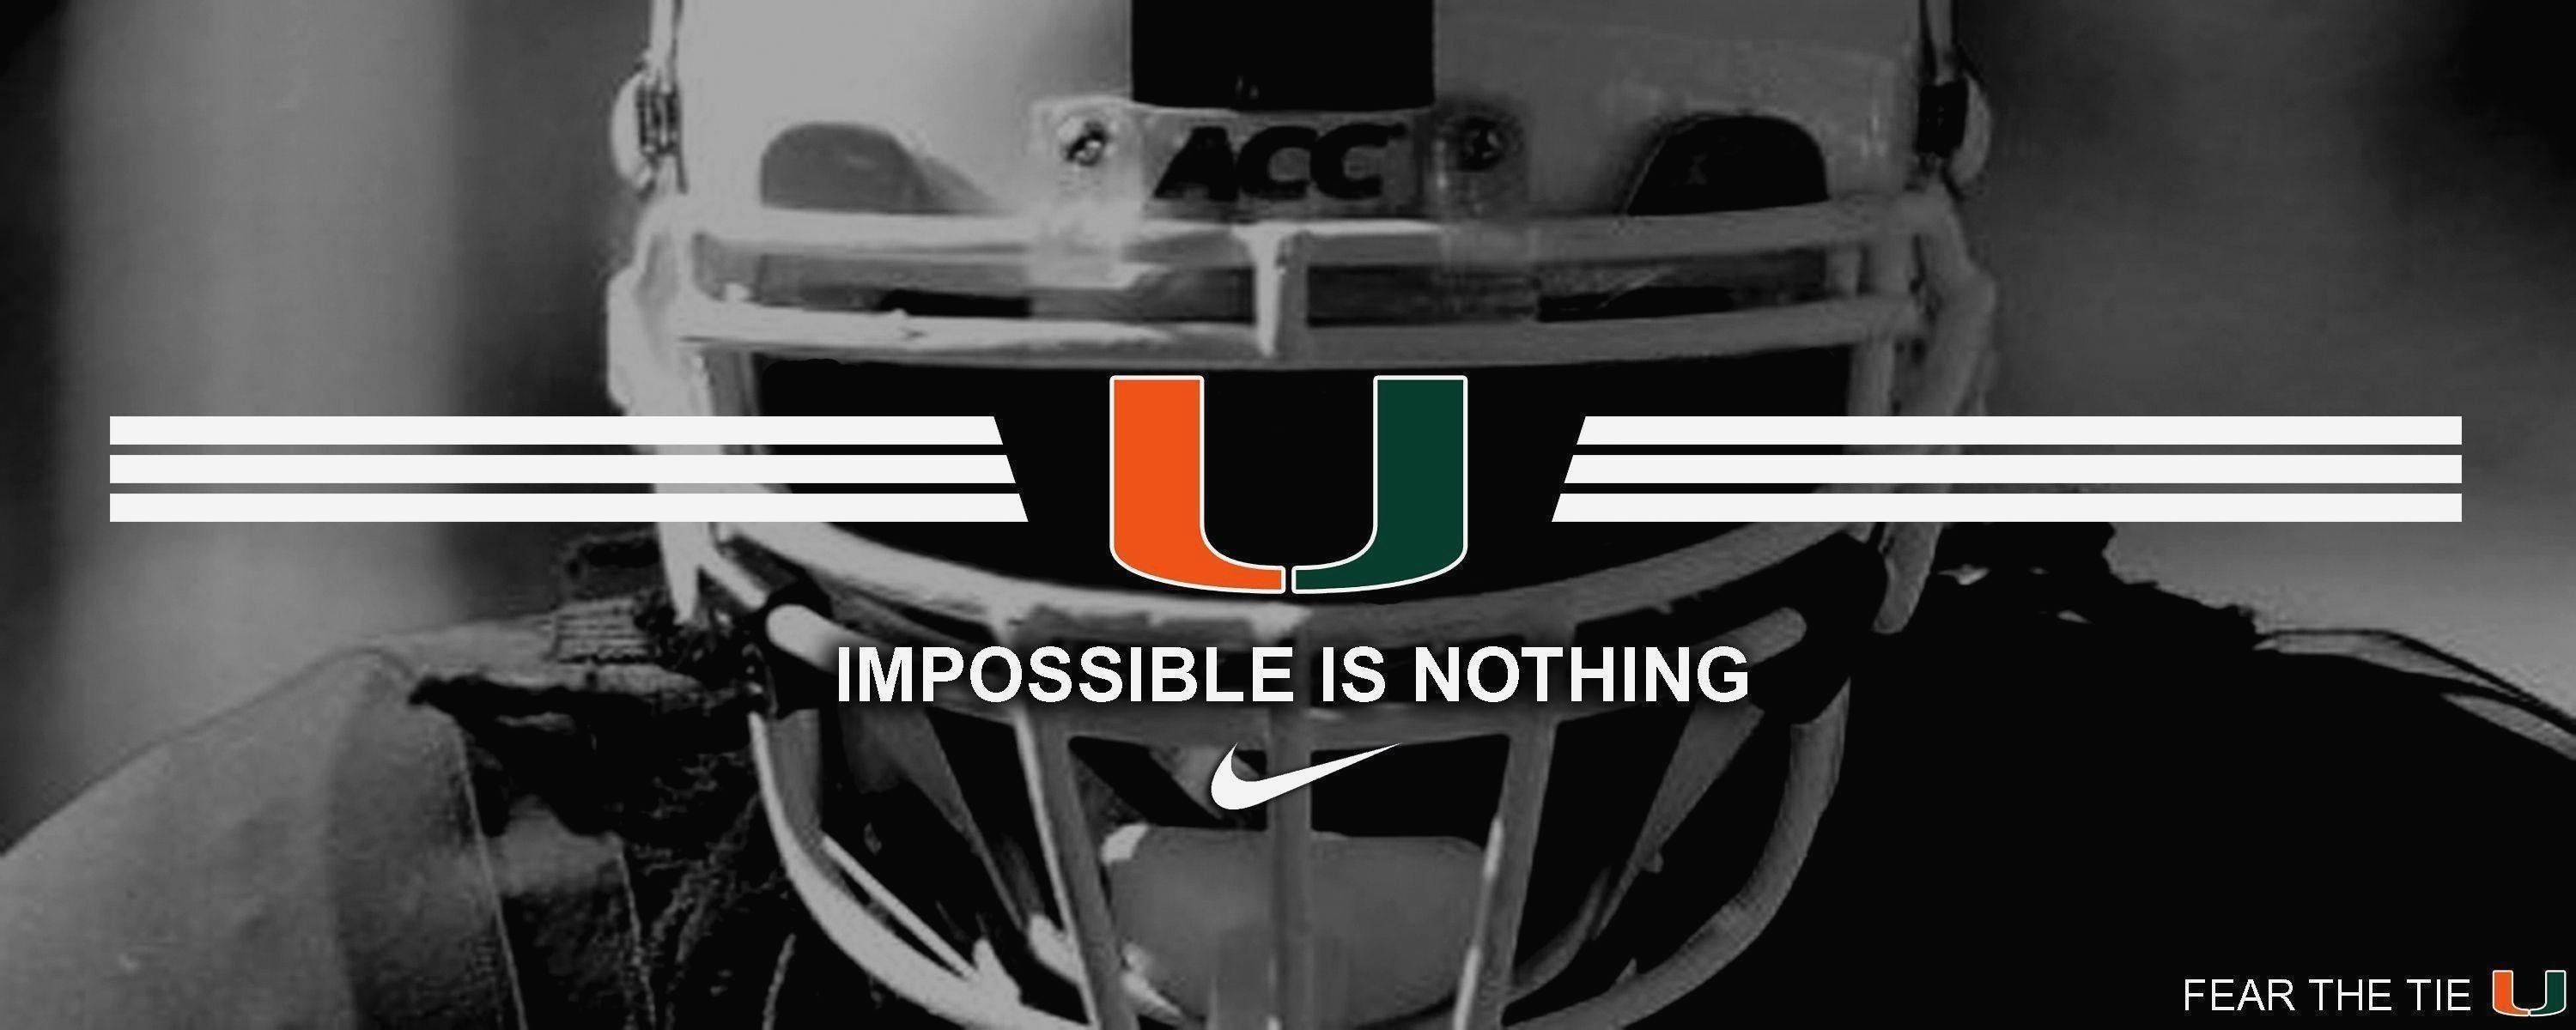 university of miami football wallpaper - free download images and